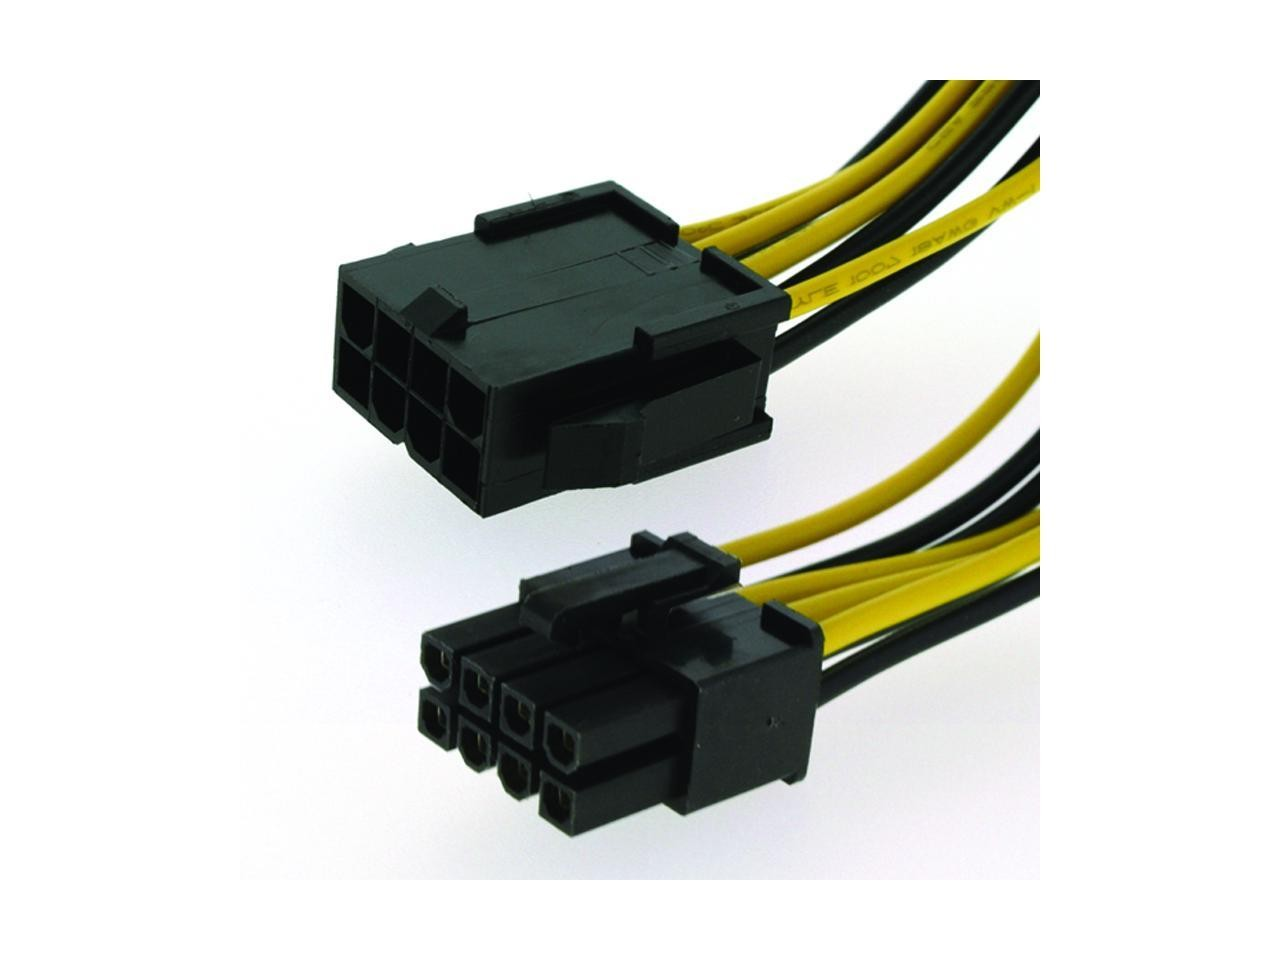 8 Pin Extension Cable Atx 12v Eps Male To Female Cpu Motherboard Antec Atx12v Power Supply Tester Psu Lead 16cm Geewiz